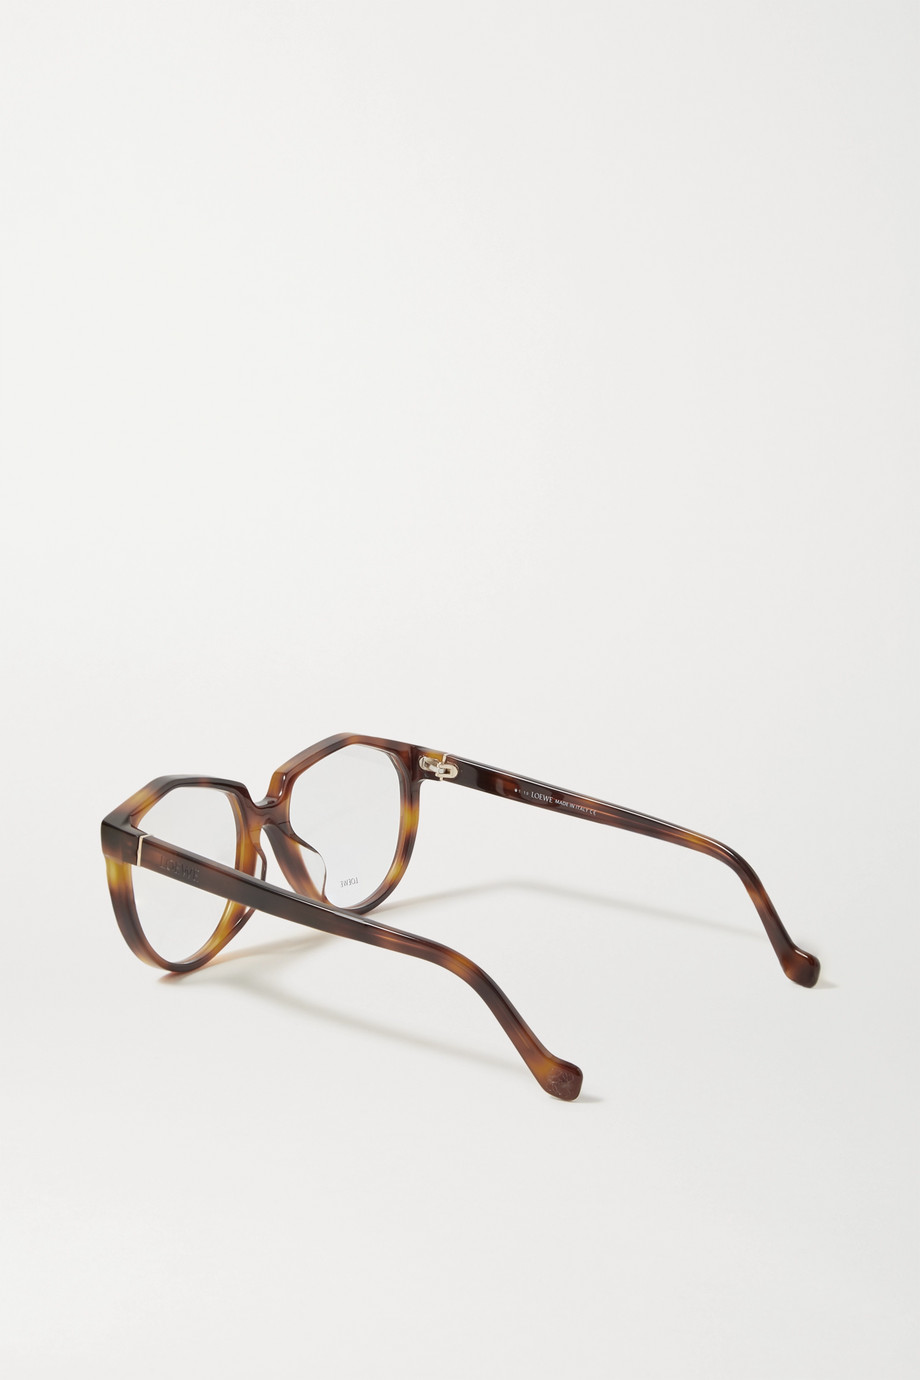 Loewe Round-frame tortoiseshell acetate optical glasses